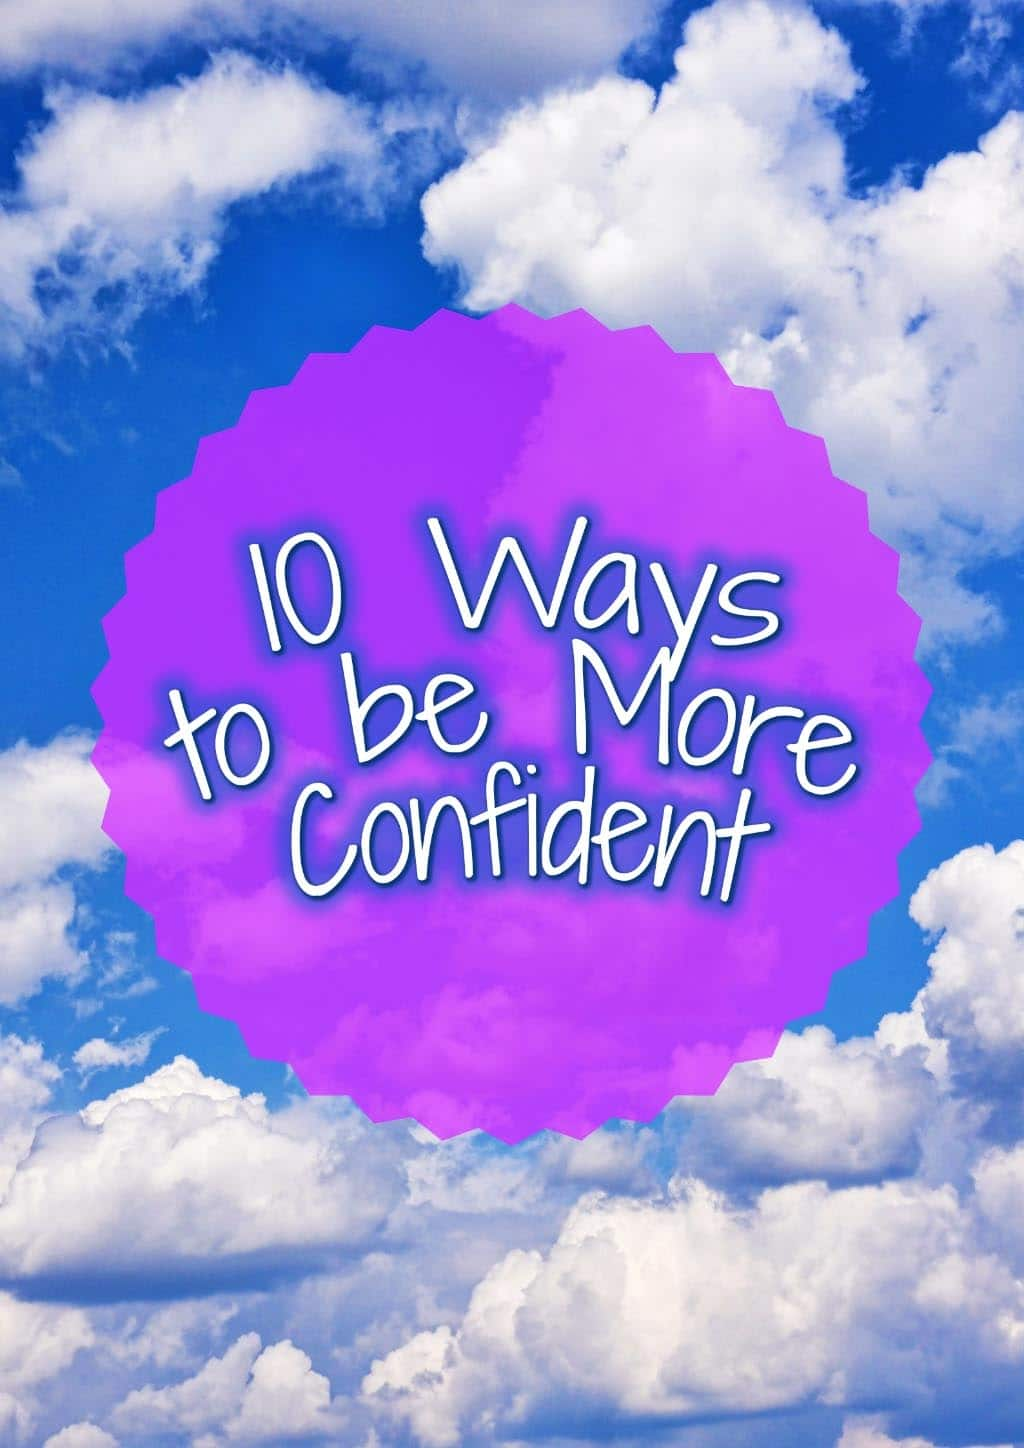 Have you ever wondered how much your lack of confidence is holding you back? What experiences and adventures are you missing out on because you don't have any self confidence? I am sharing everything that has been helping me with these 10 Ways To Be More Confident.